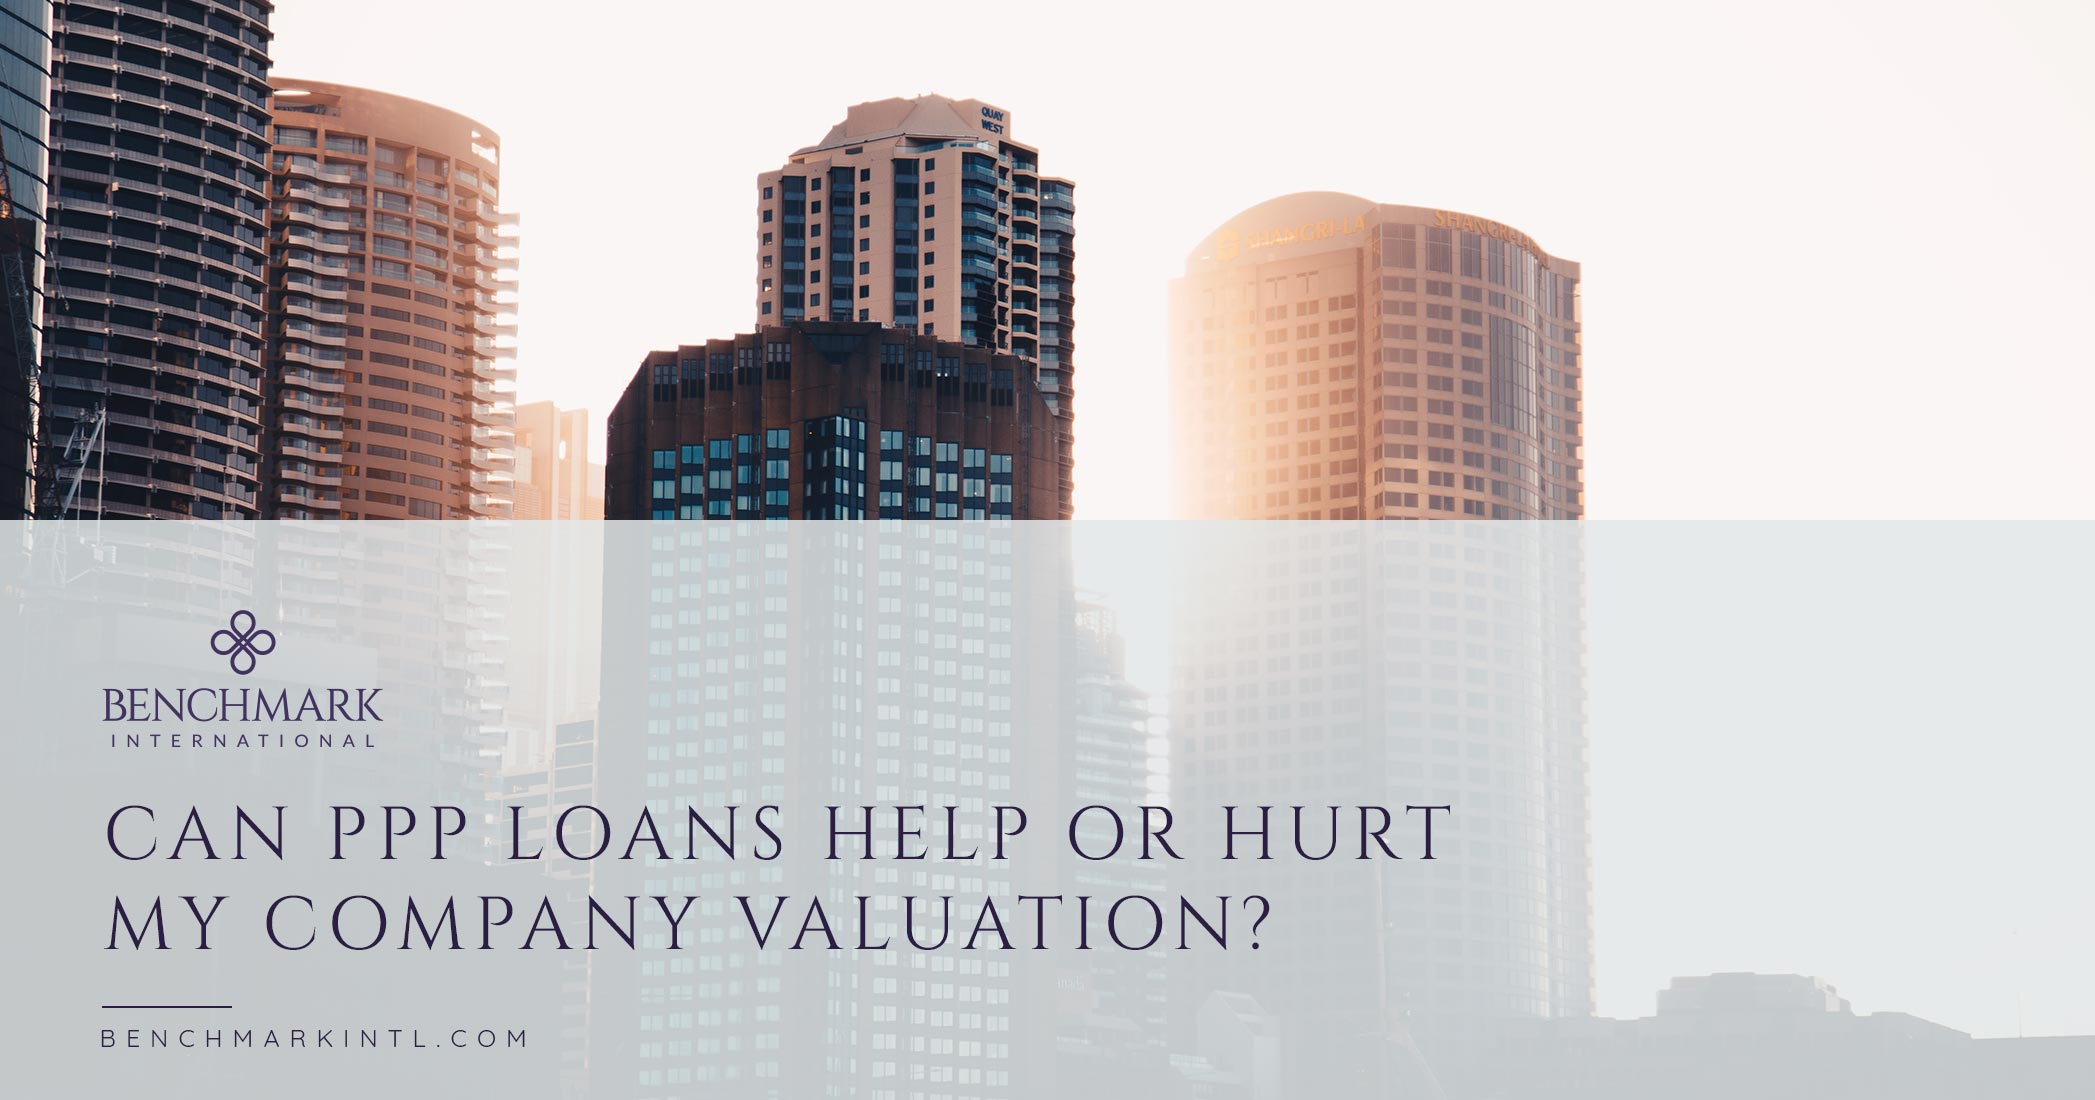 Can A PPP Loan Help or Hurt My Company Valuation?